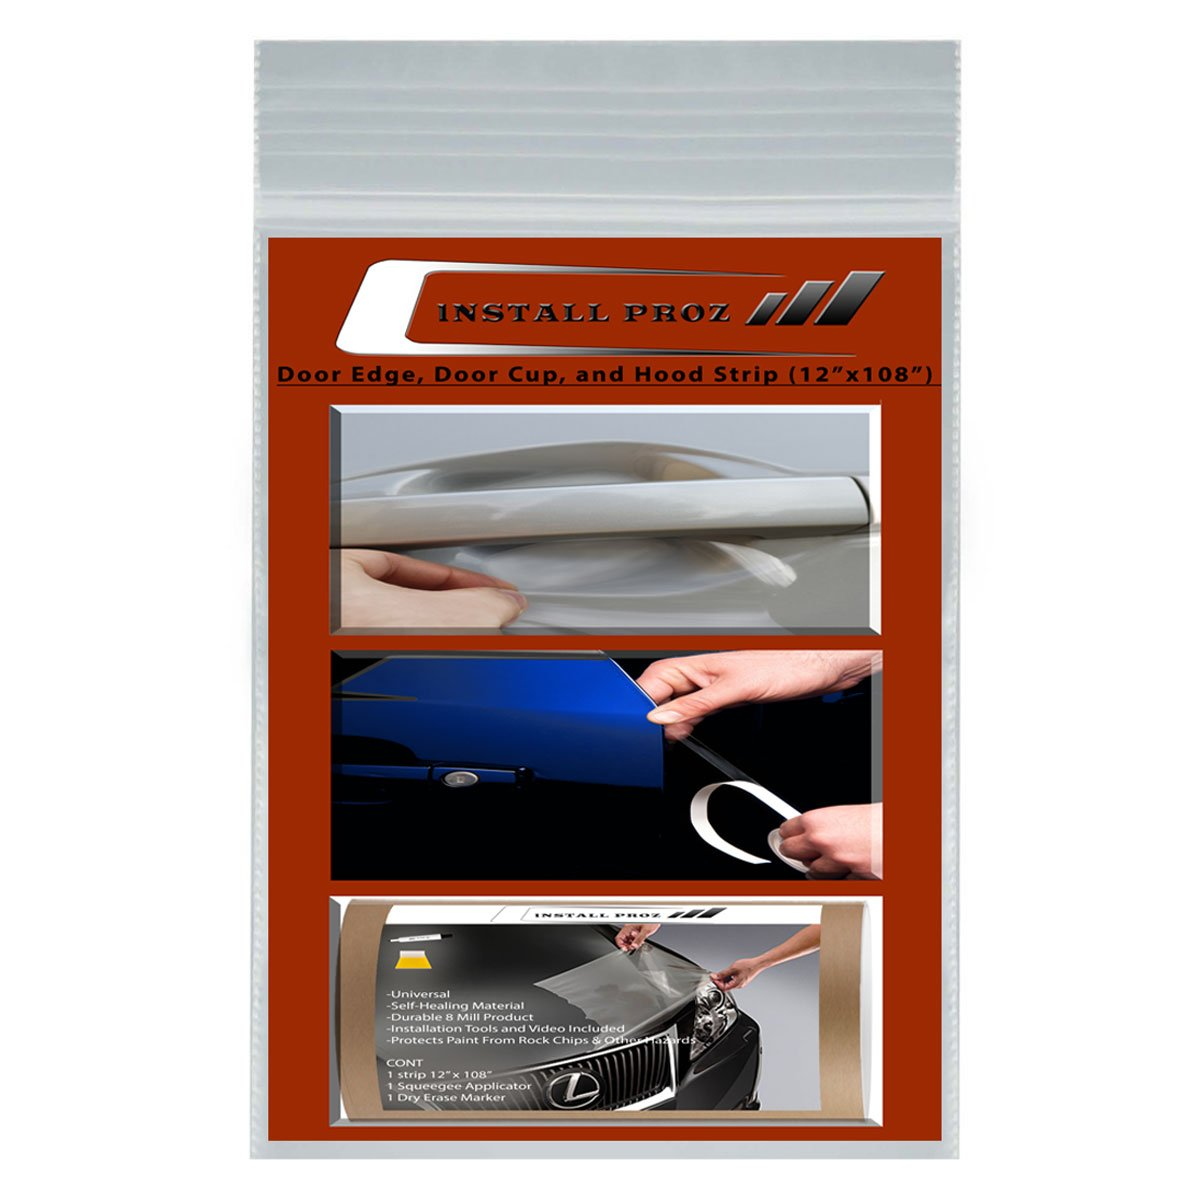 Install Proz Self-Healing Clear Paint Protection Film Kits (Bundle 12''x108'' Hood Strip, Door Edge, Door Cup) by Install Proz (Image #1)